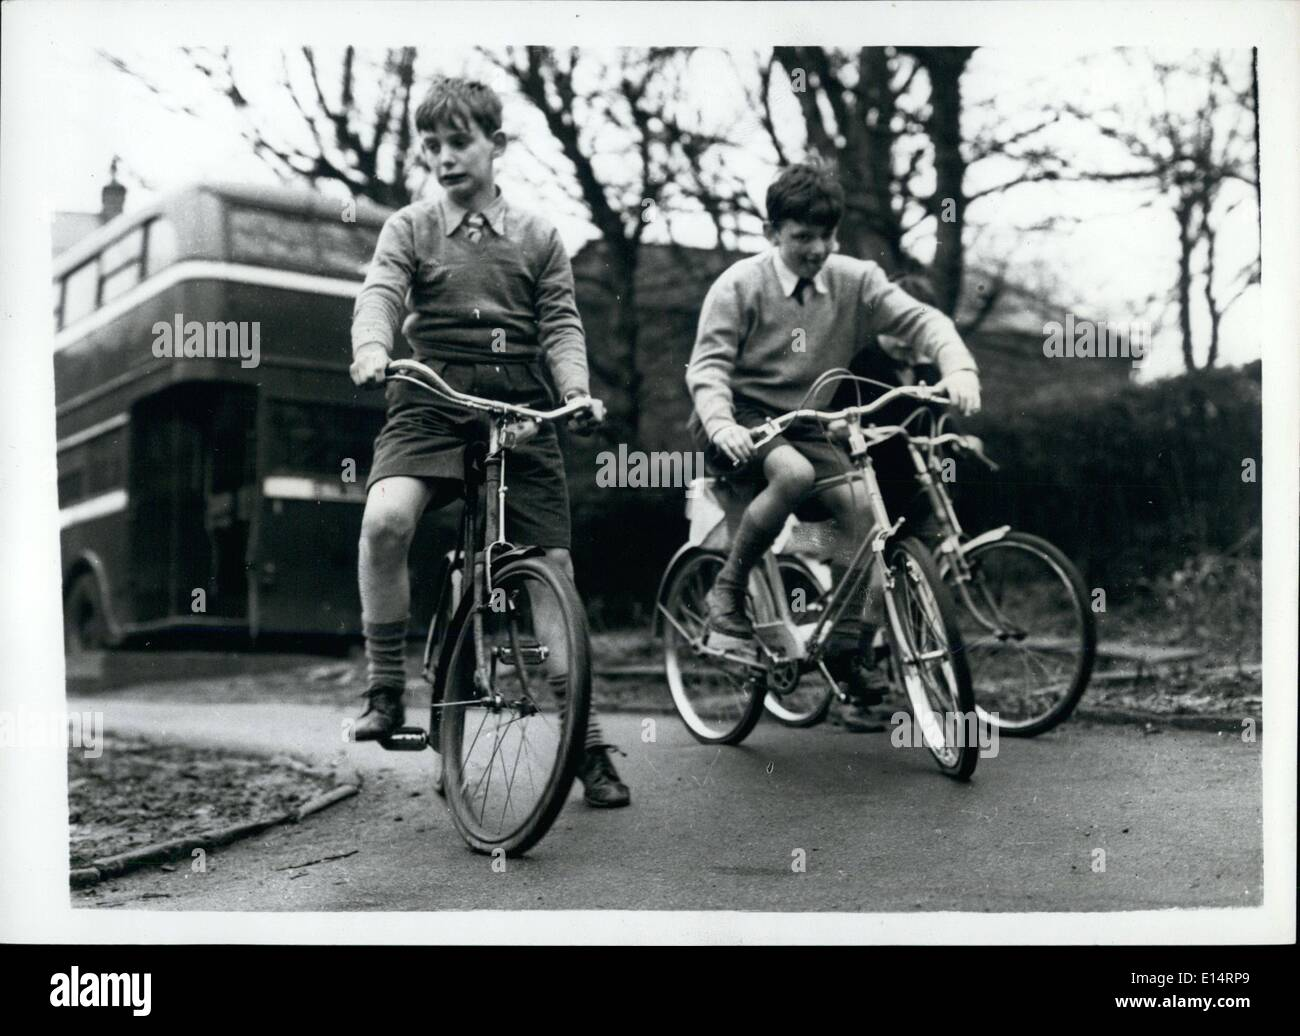 Apr. 18, 2012 - Riding Bikes. and they are blind. looks of grim determination on their faces as they ride their bikes. The school bus they play on is seen in the background. - Stock Image